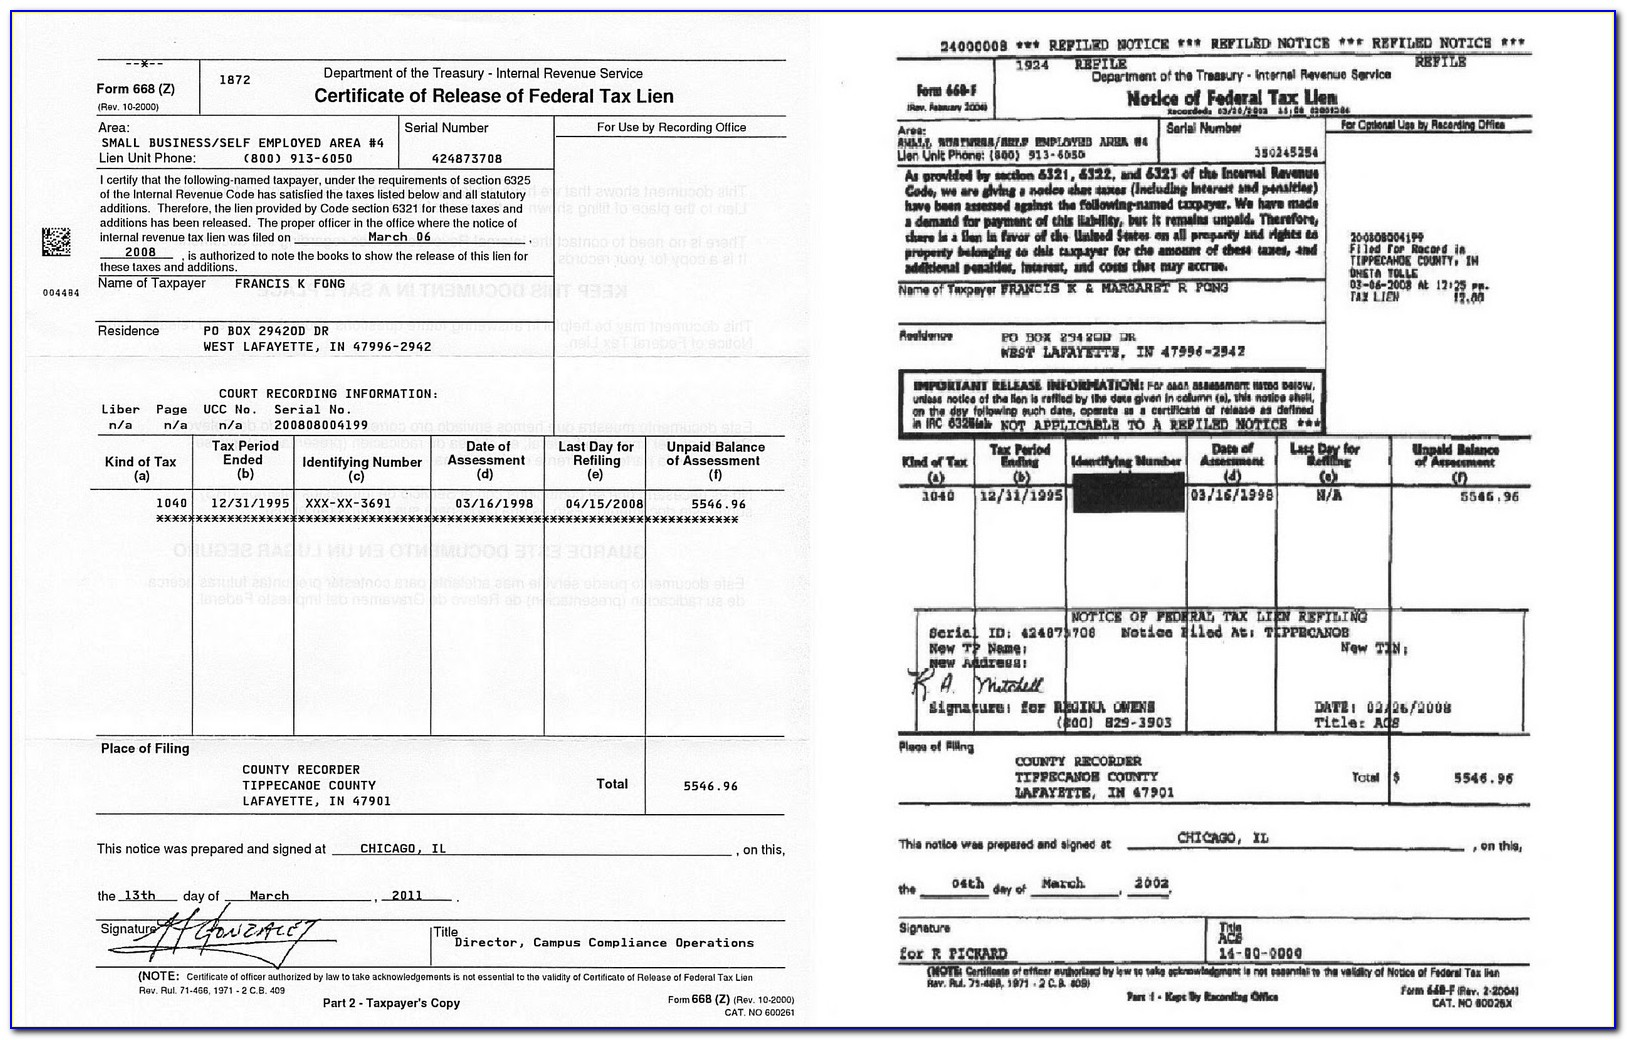 Irs Certificate Of Release Of Federal Tax Lien Form 668 Z